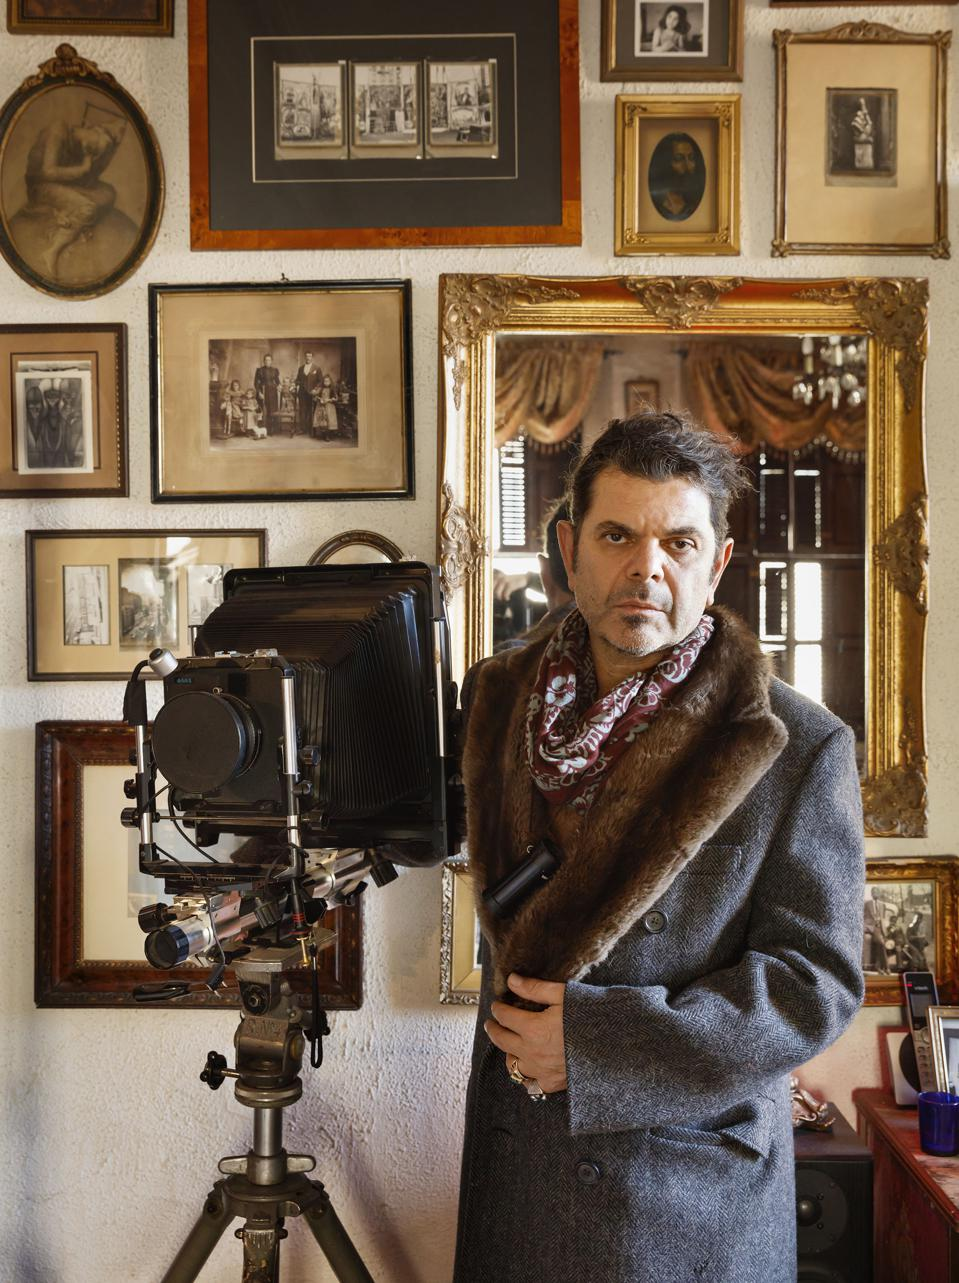 Hotel Chelsea resident and photographer, Tony Notarberardino, has been living in the hotel since 1994.